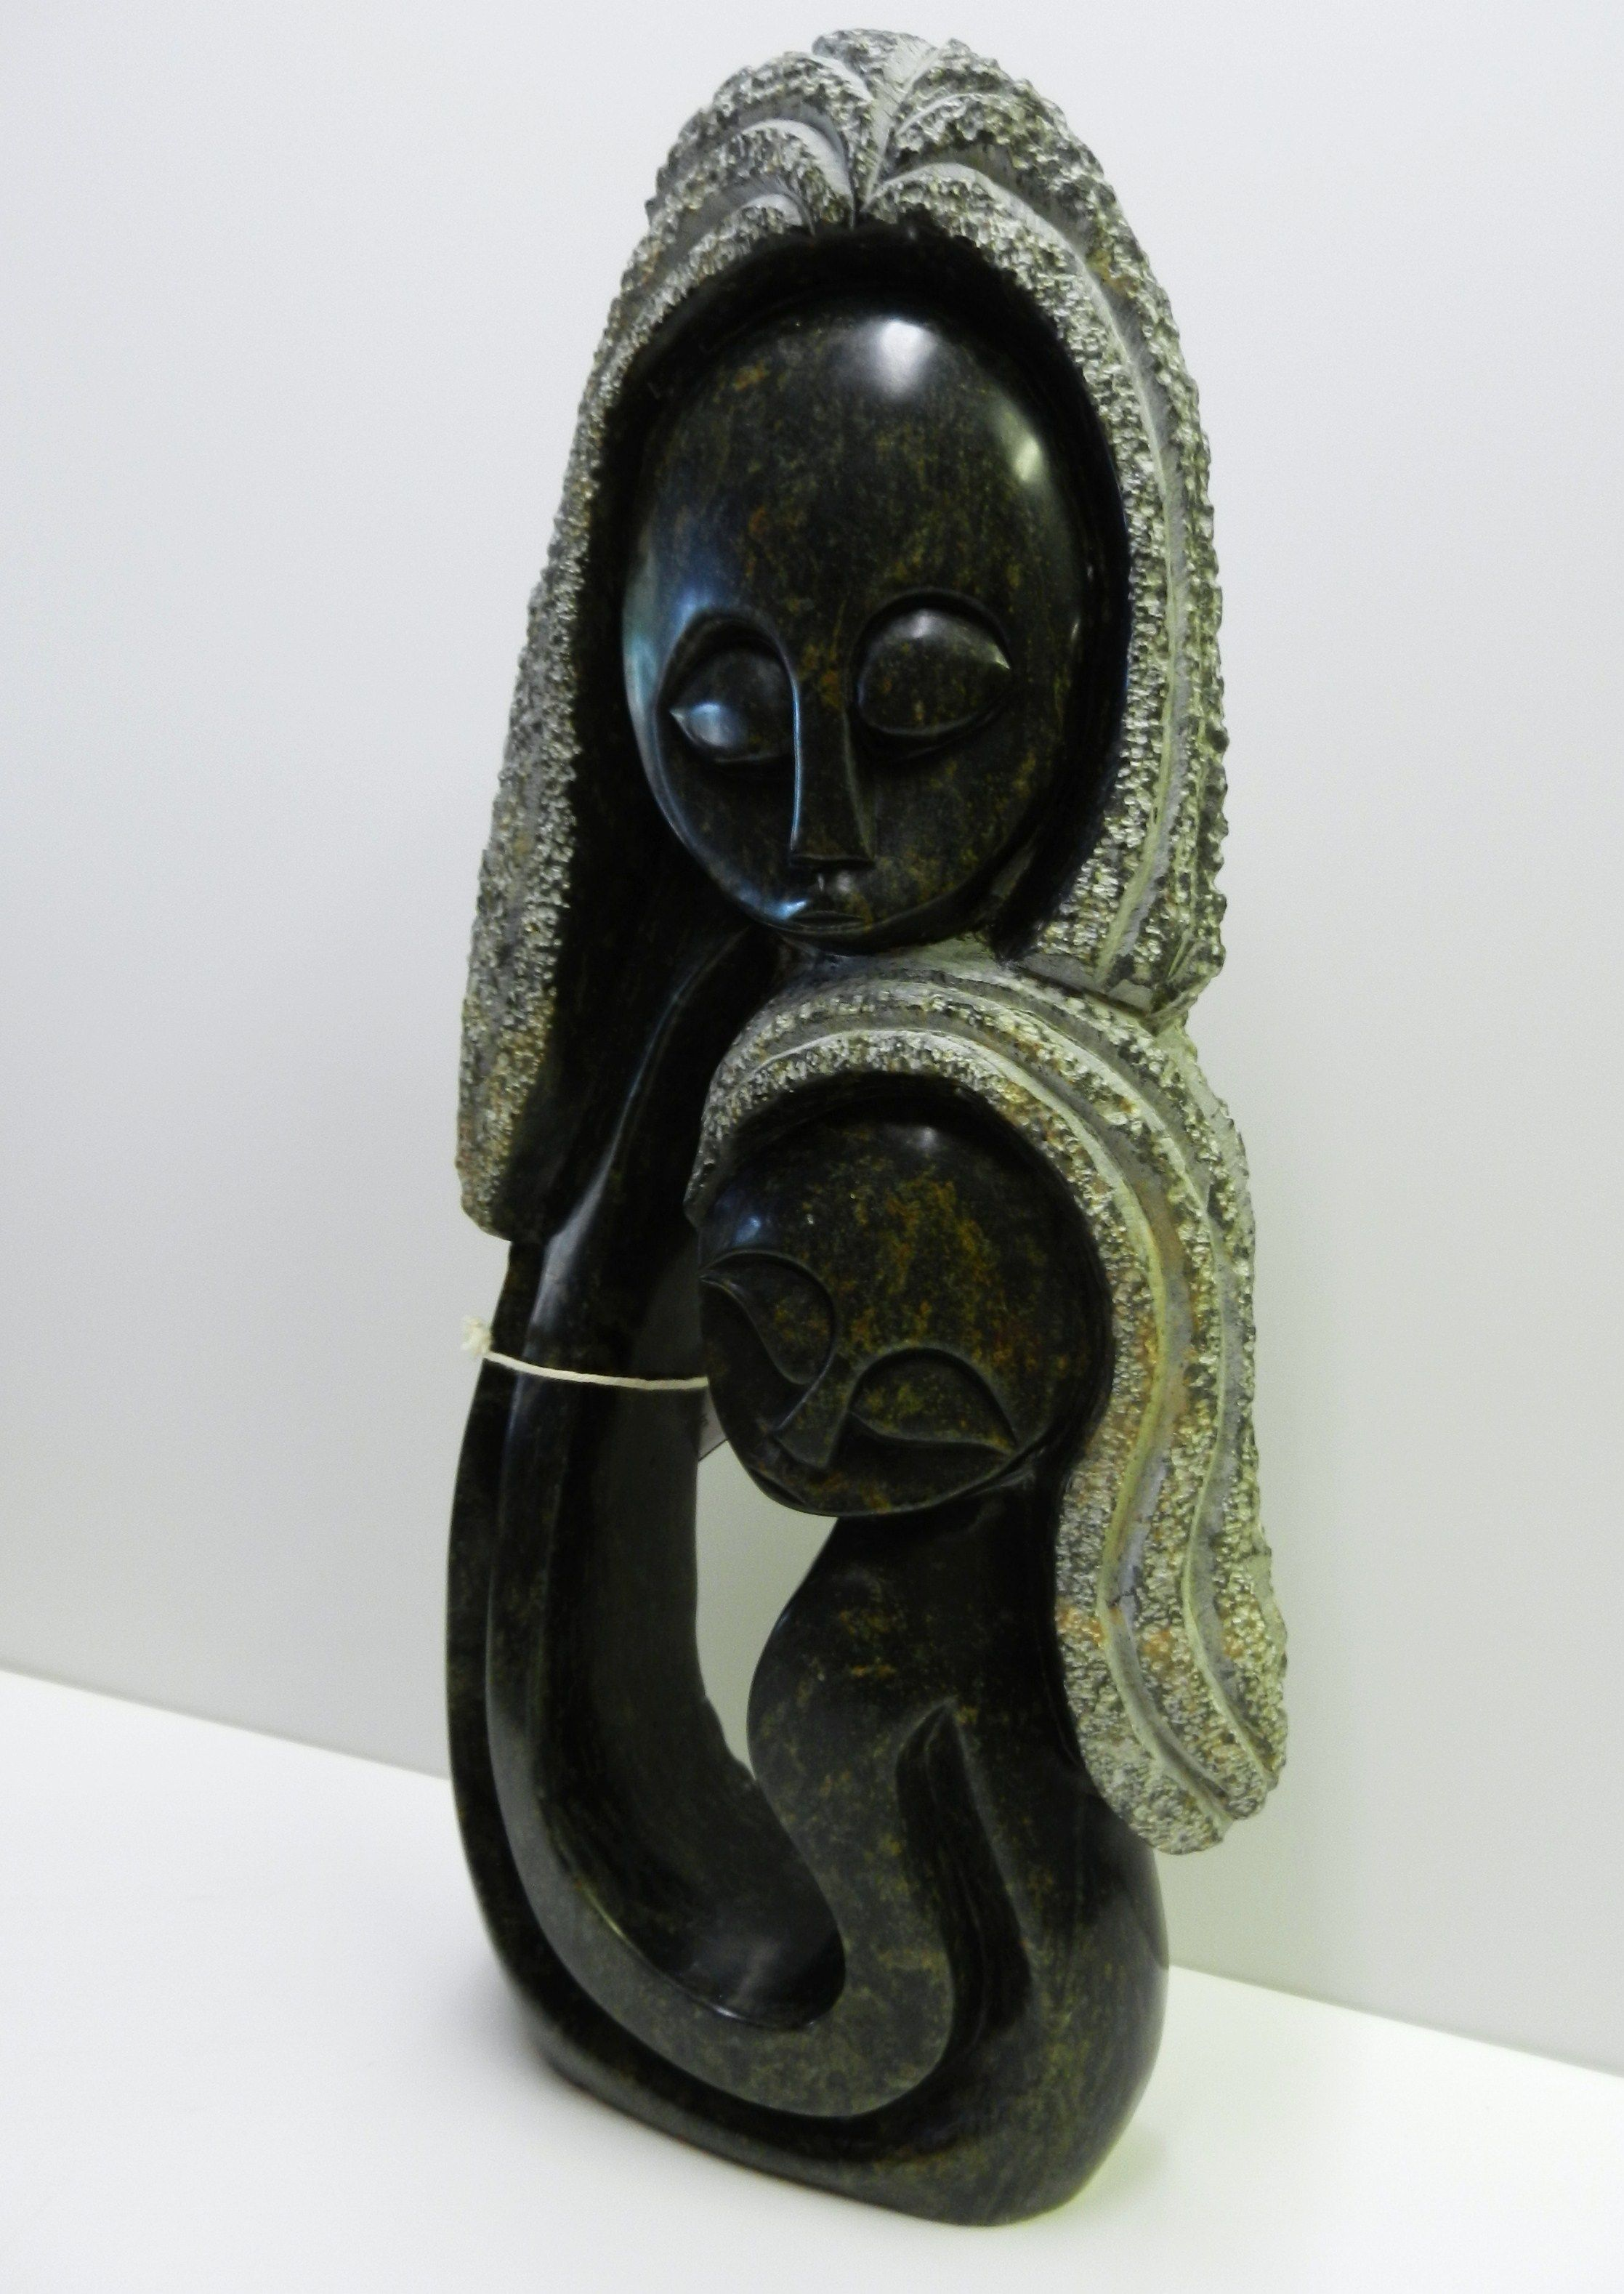 Couple Kissing Embracing Abstract Figurine Art Sculpture Carving Vintage African Soapstone Embracing Couple Statue Soapstone Figure